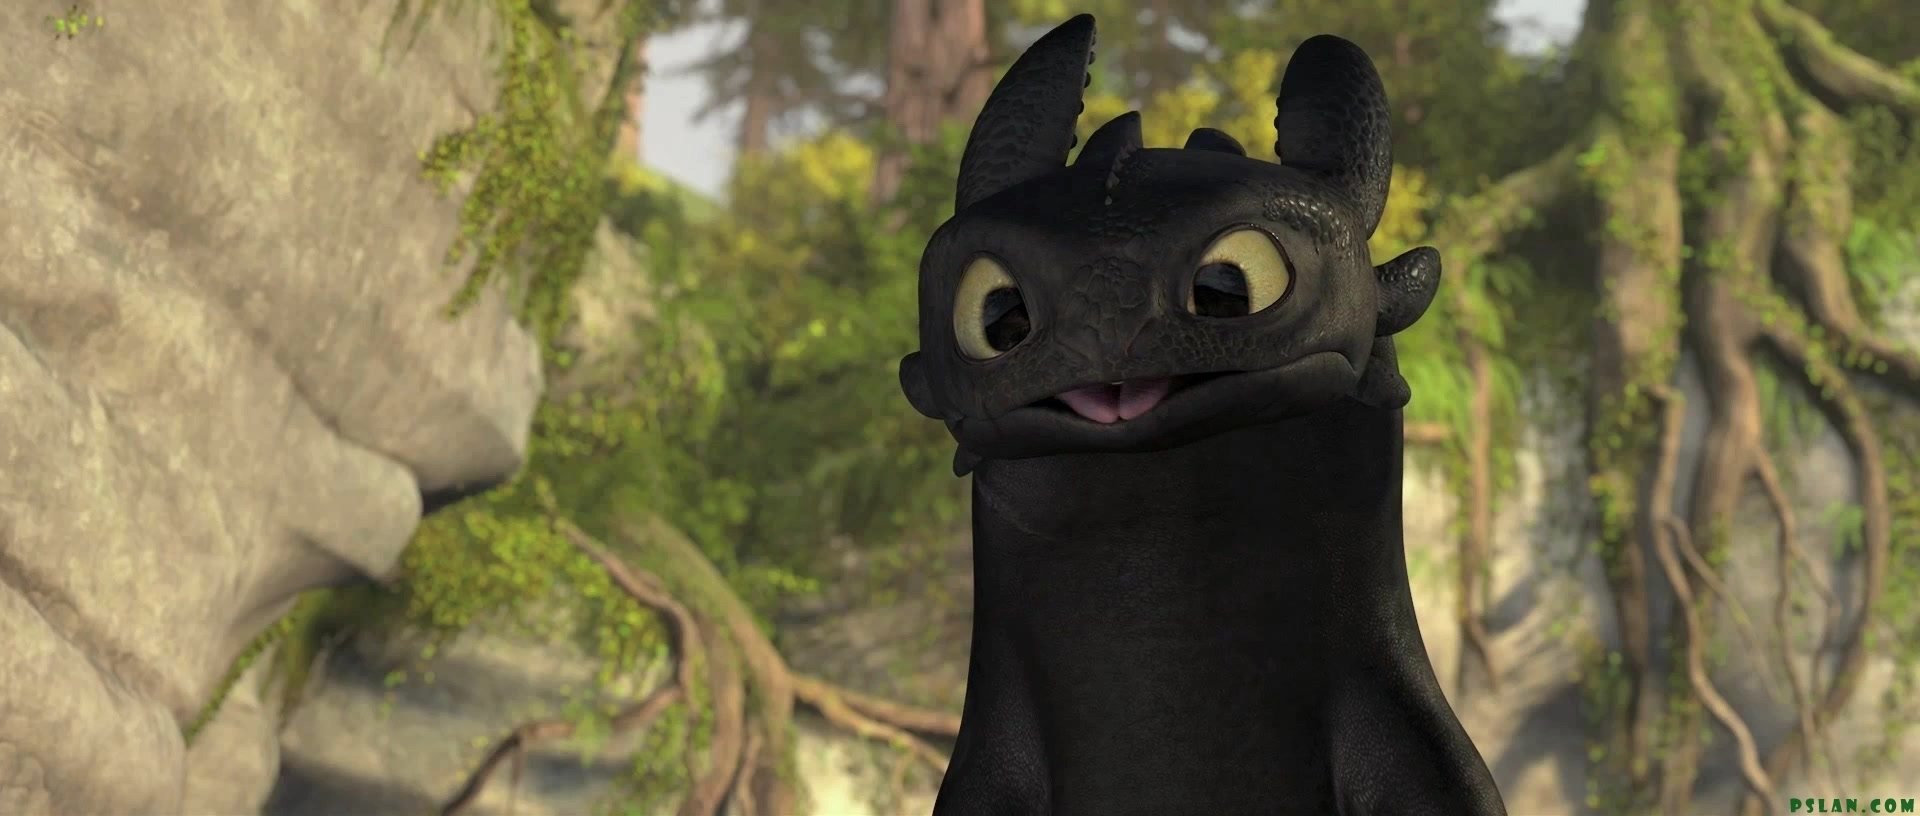 how to train your dragon - photo #42